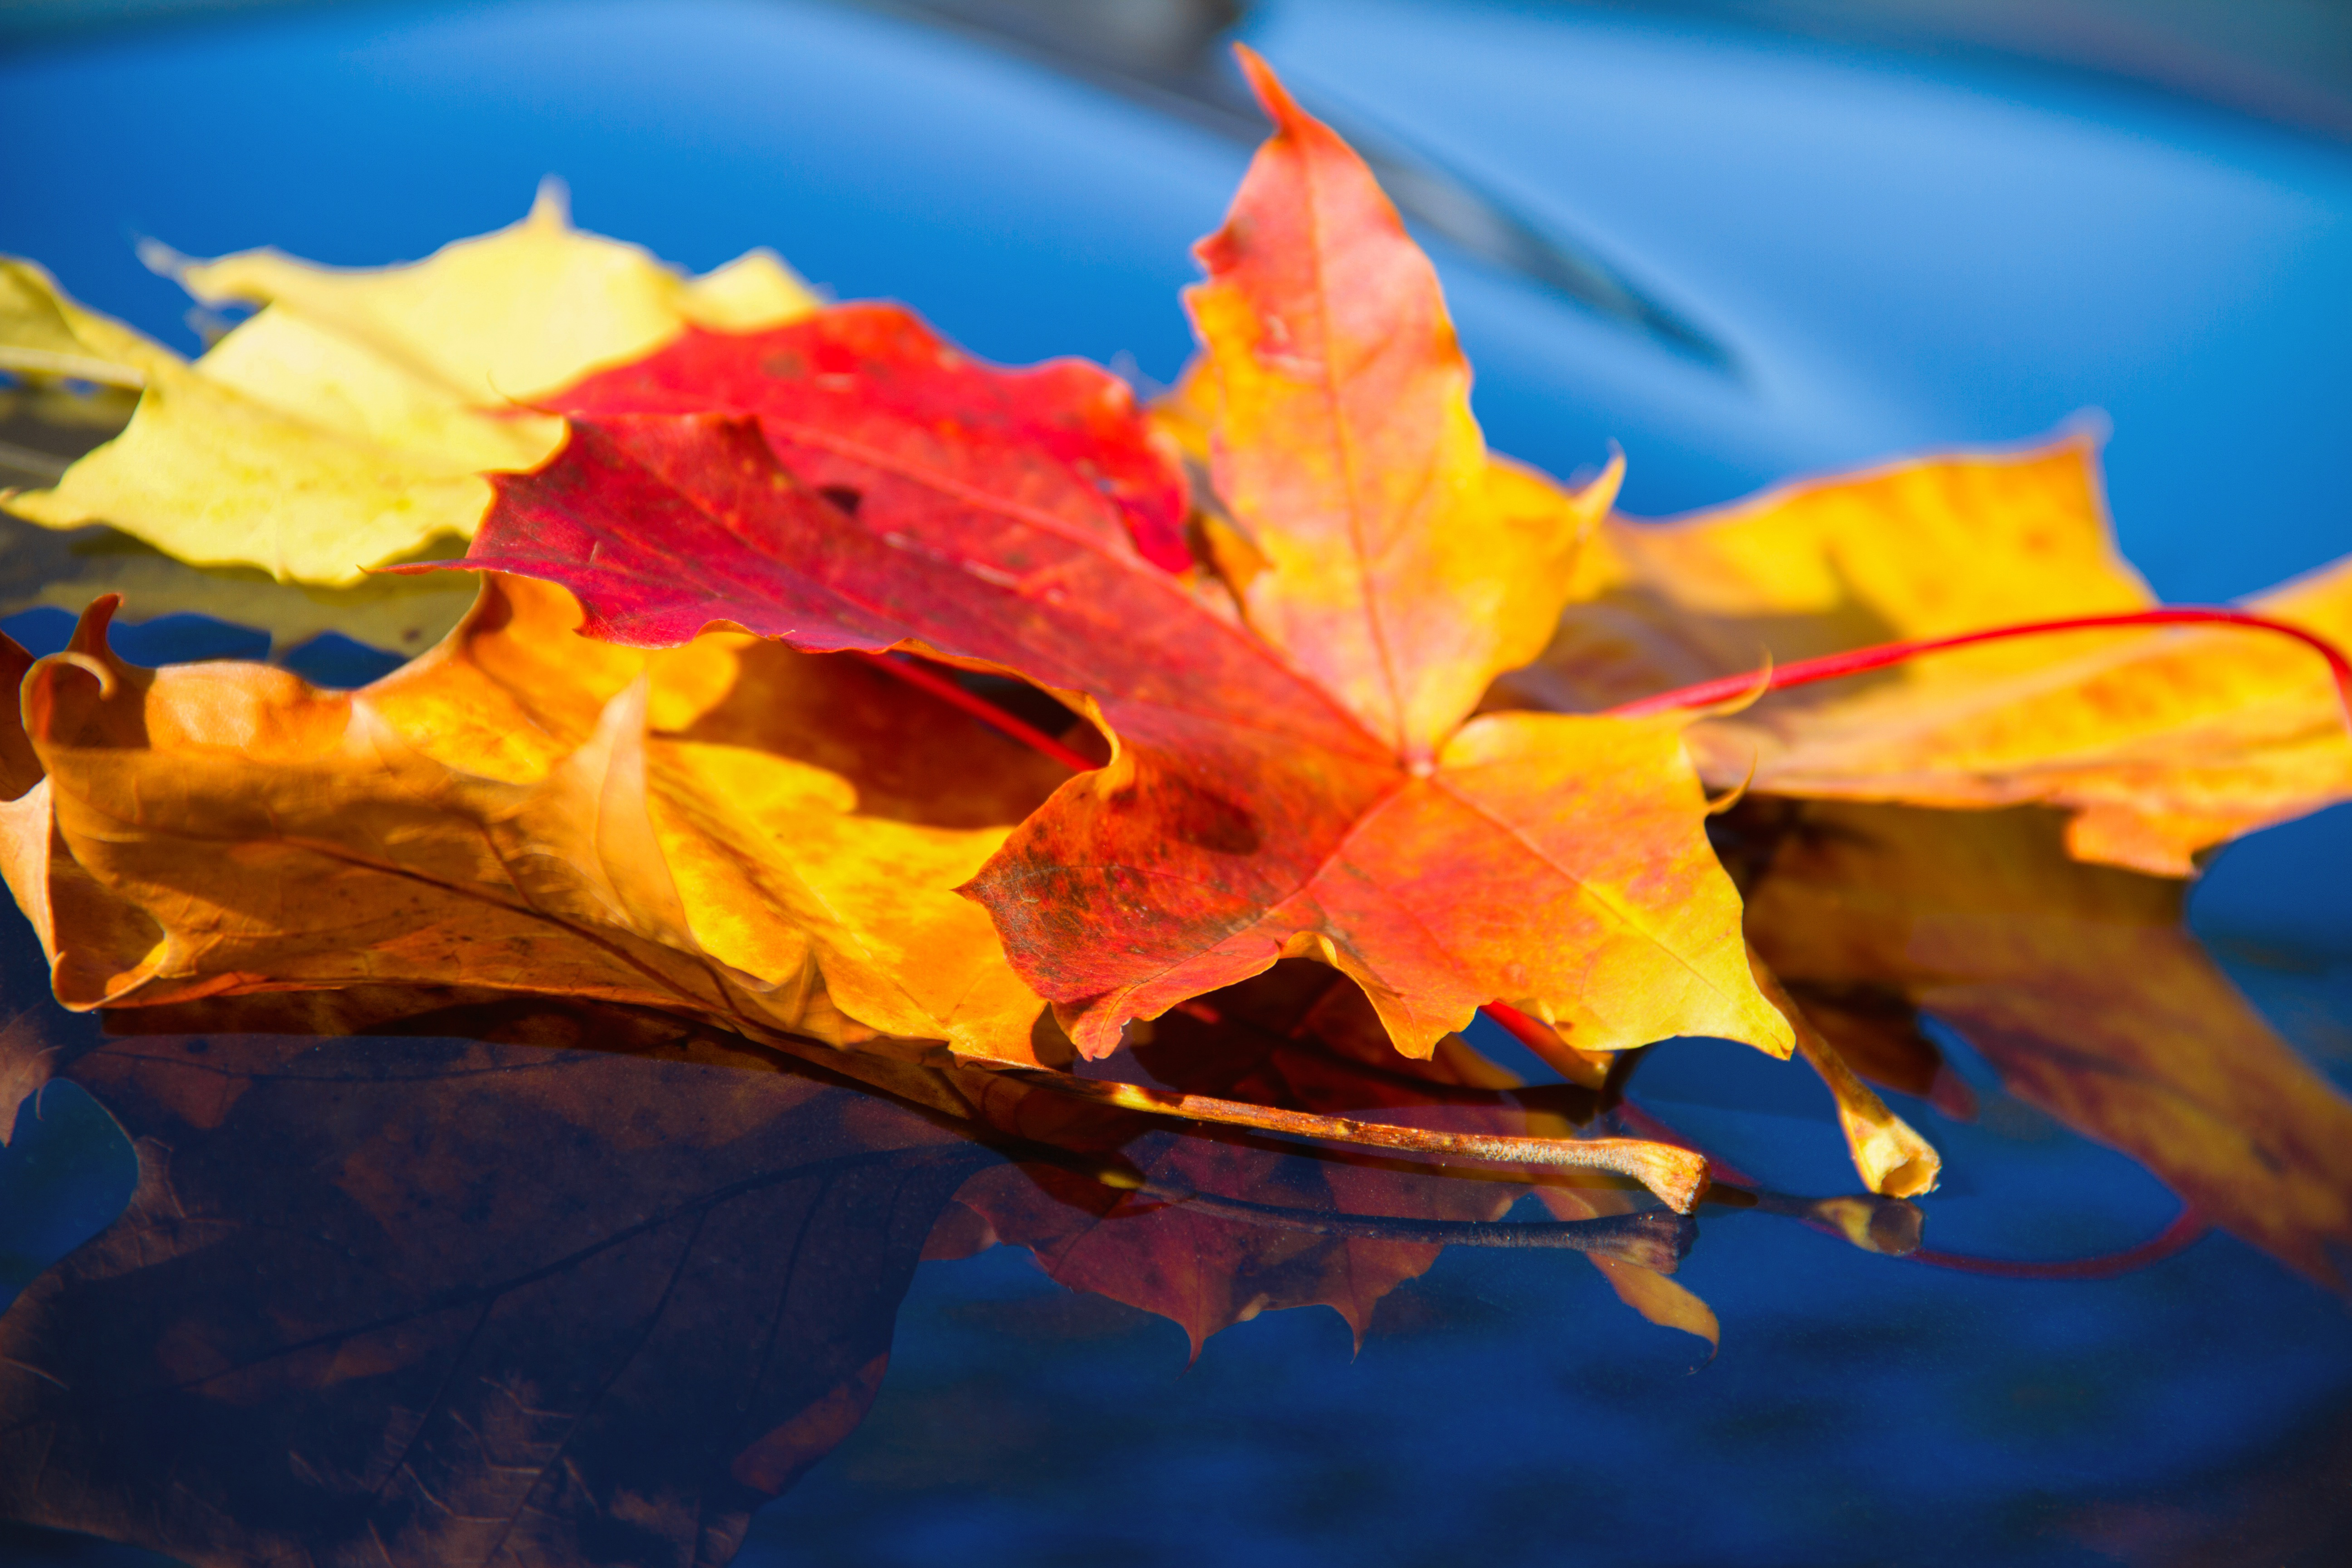 leaf, autumn, fall leaves, leaves, yellow,